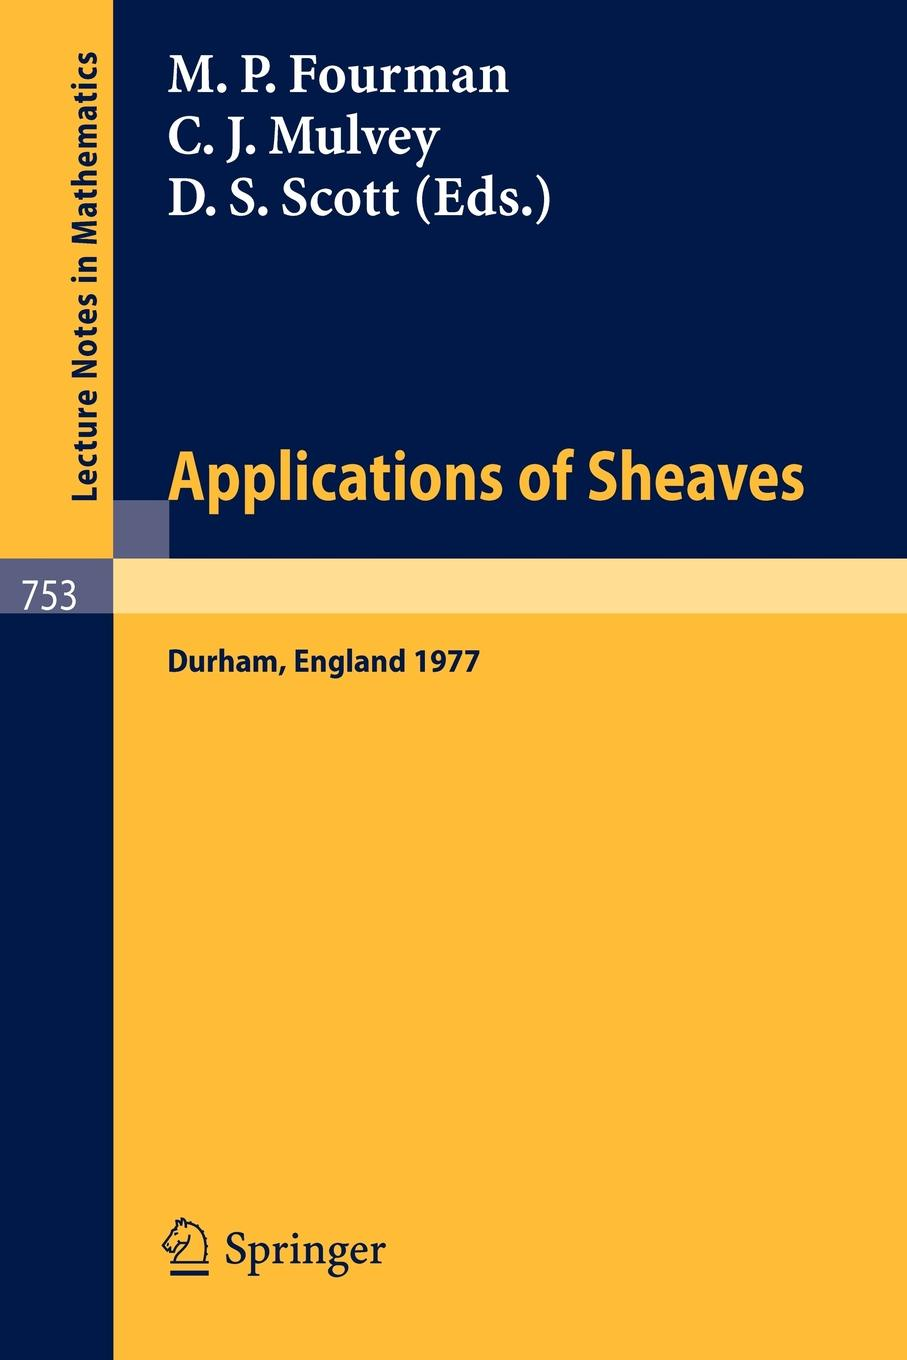 Applications of Sheaves. Proceedings of the Research Symposium on Applications of Sheaf Theory to Logic, Algebra and Analysis, Durham, July 9-21, 1977 applications of supercritical angle fluorescence